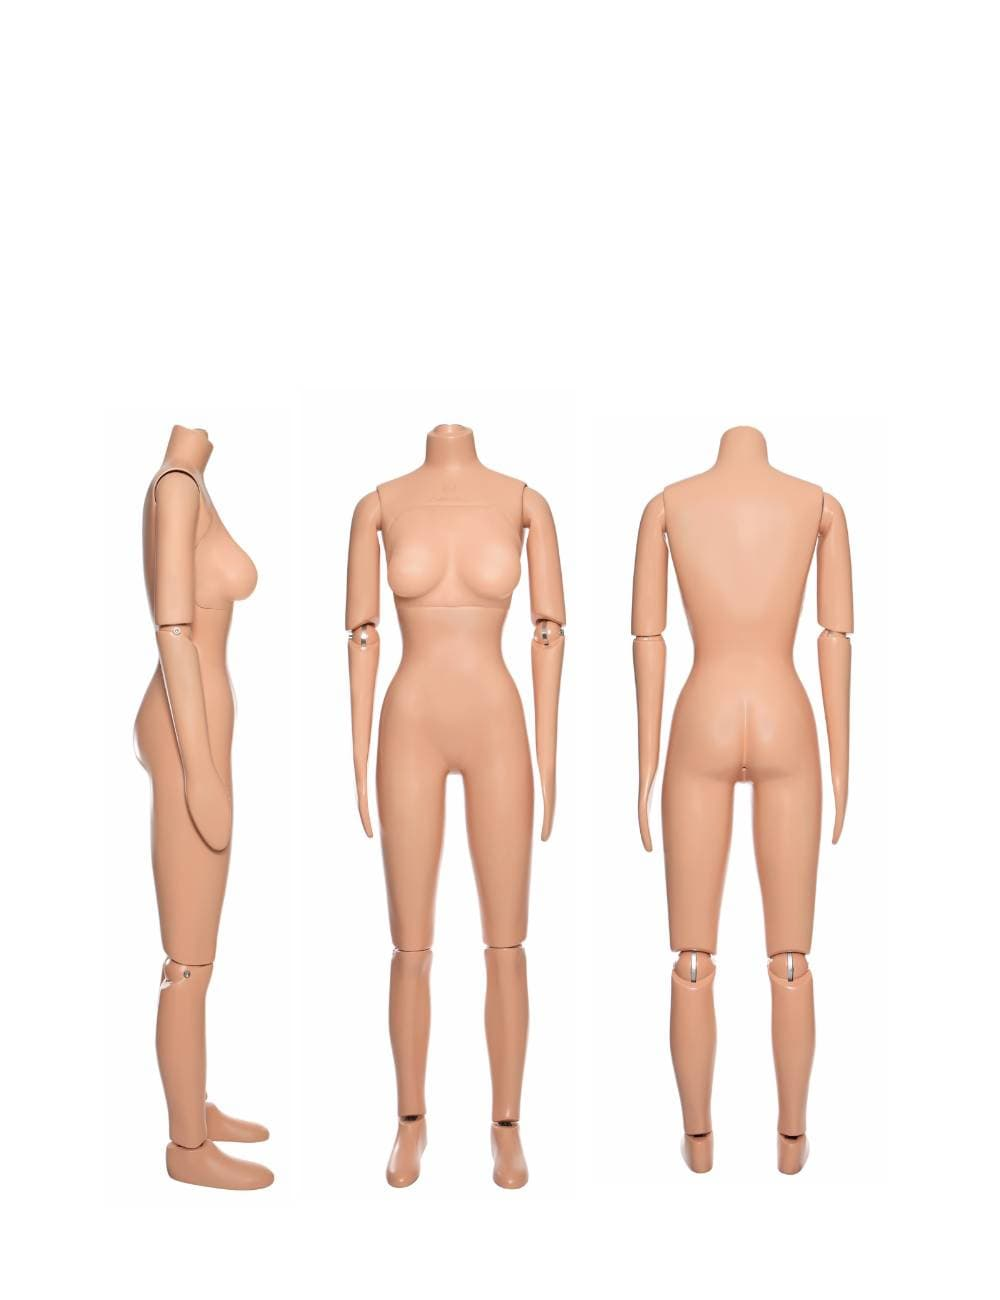 Arms and legs full mannequin